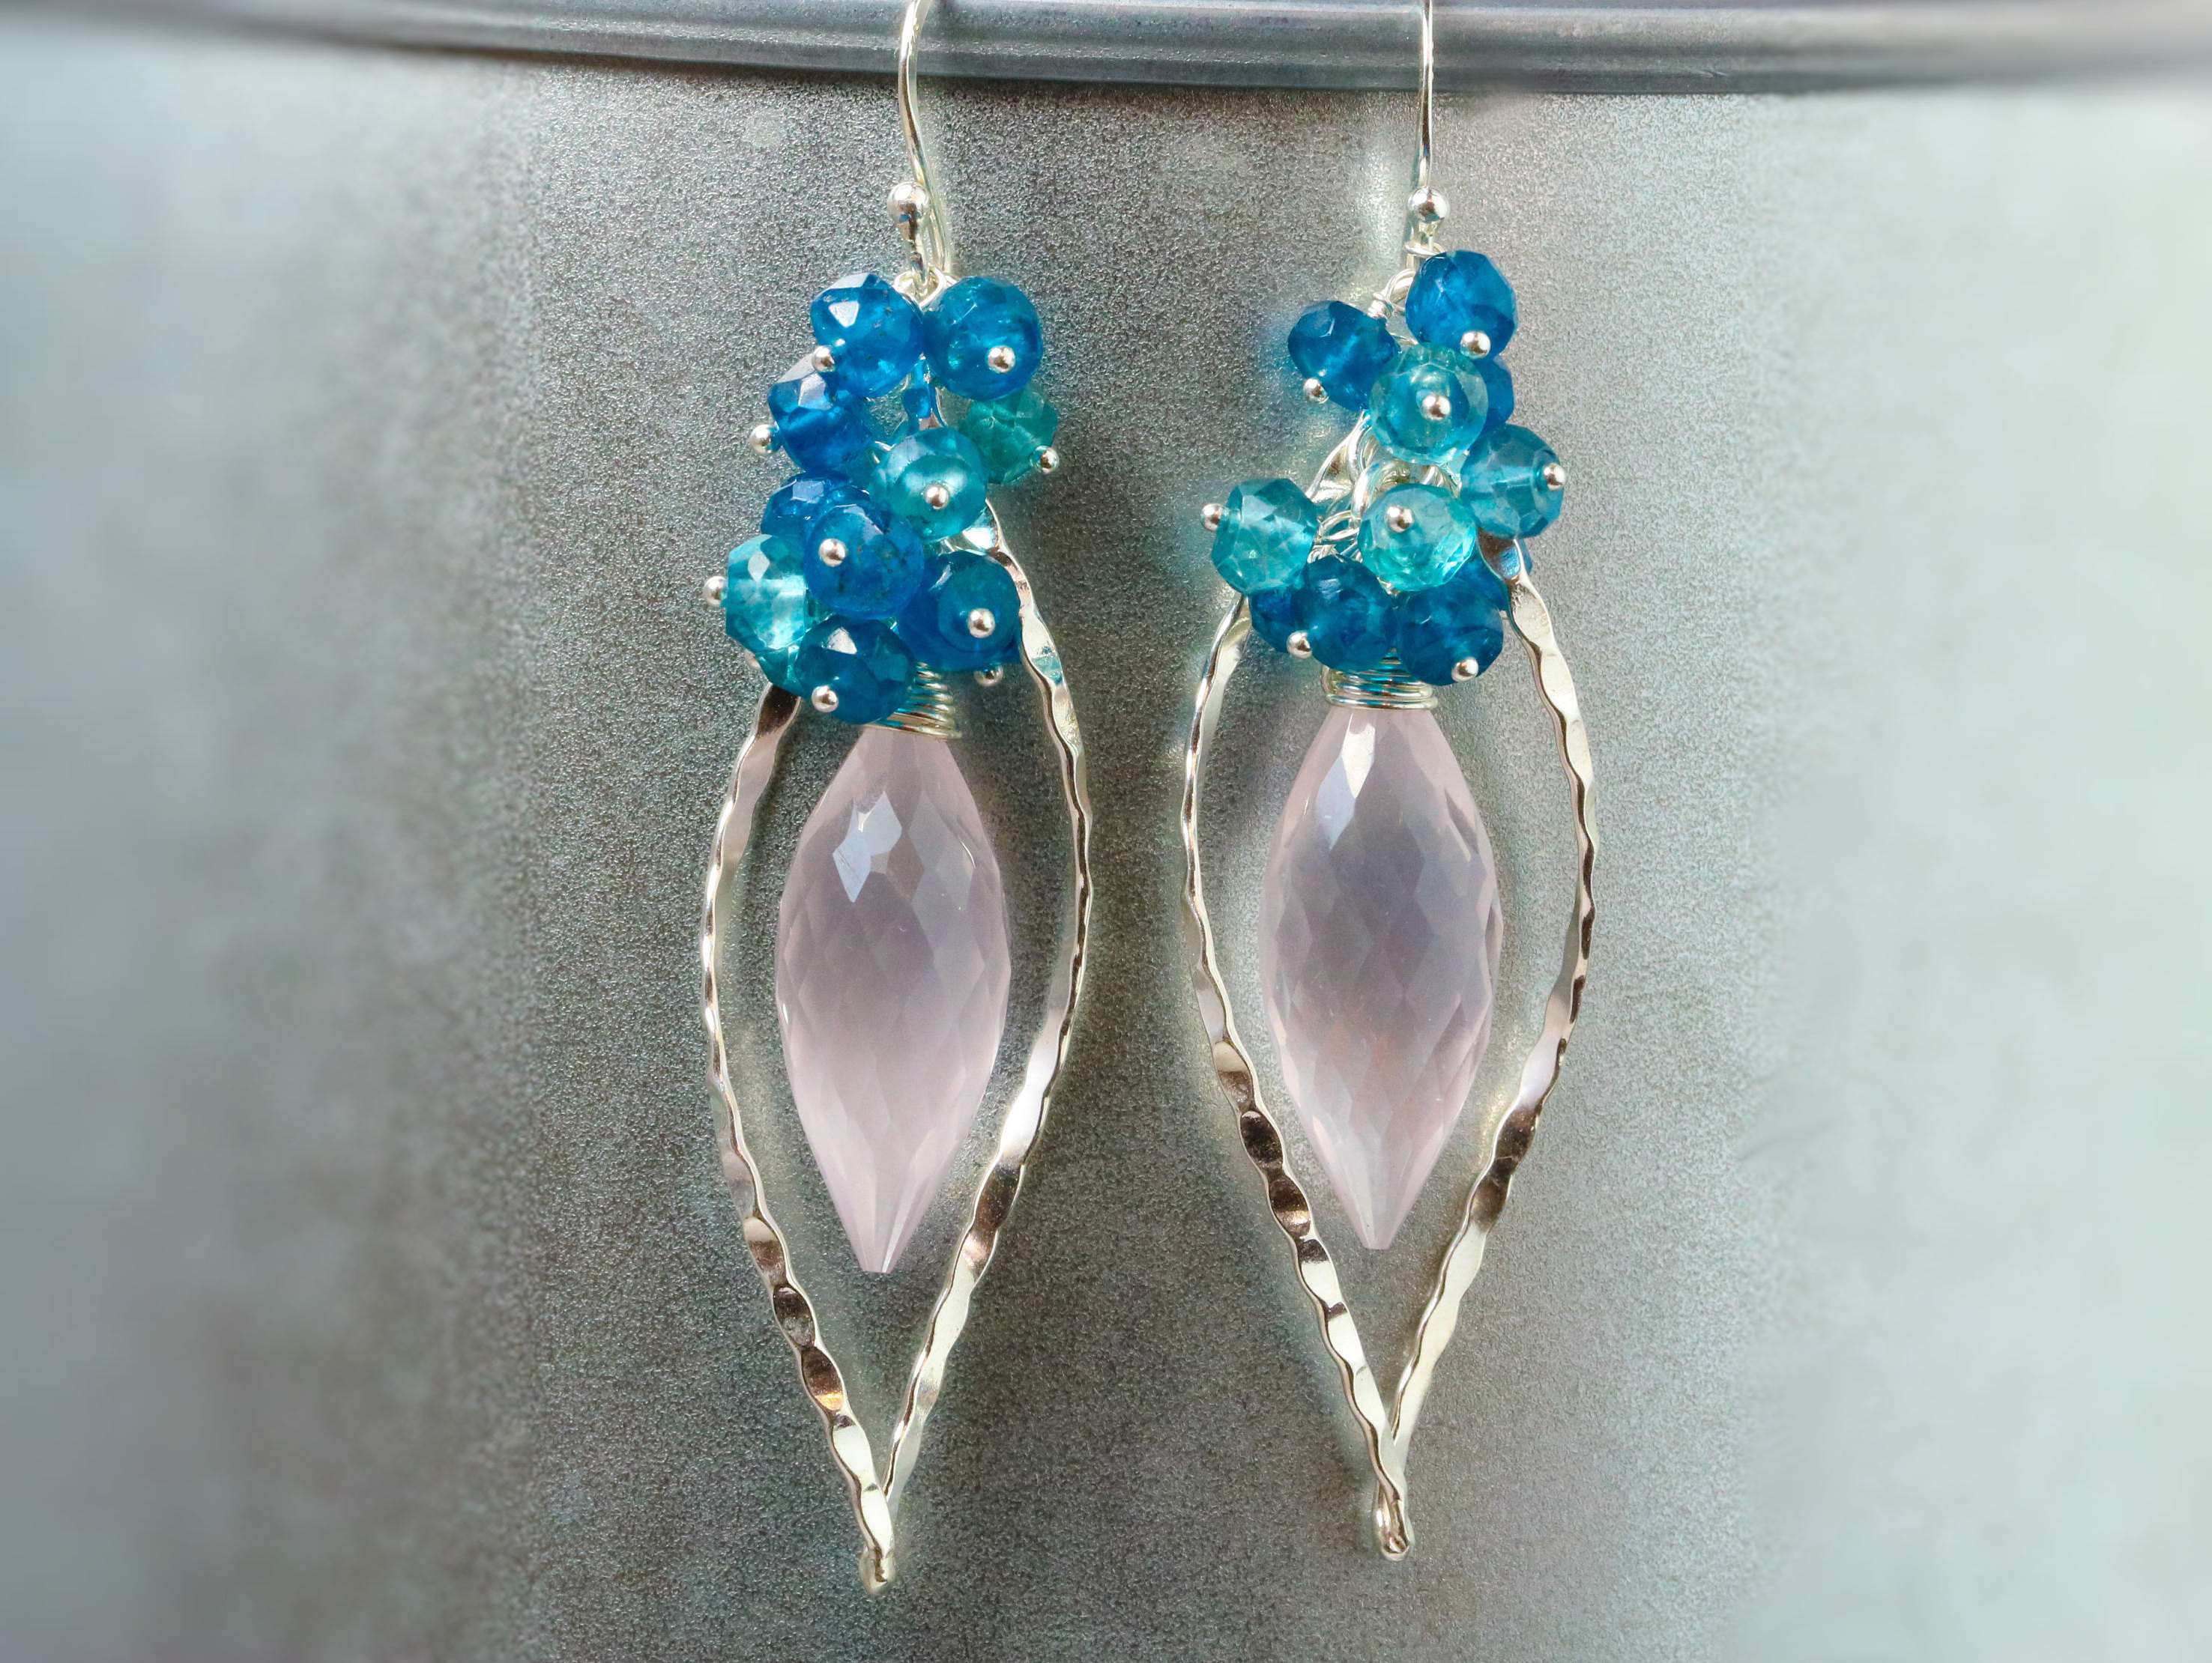 margery hirschey do apatite pin turquoise earrings pinterest